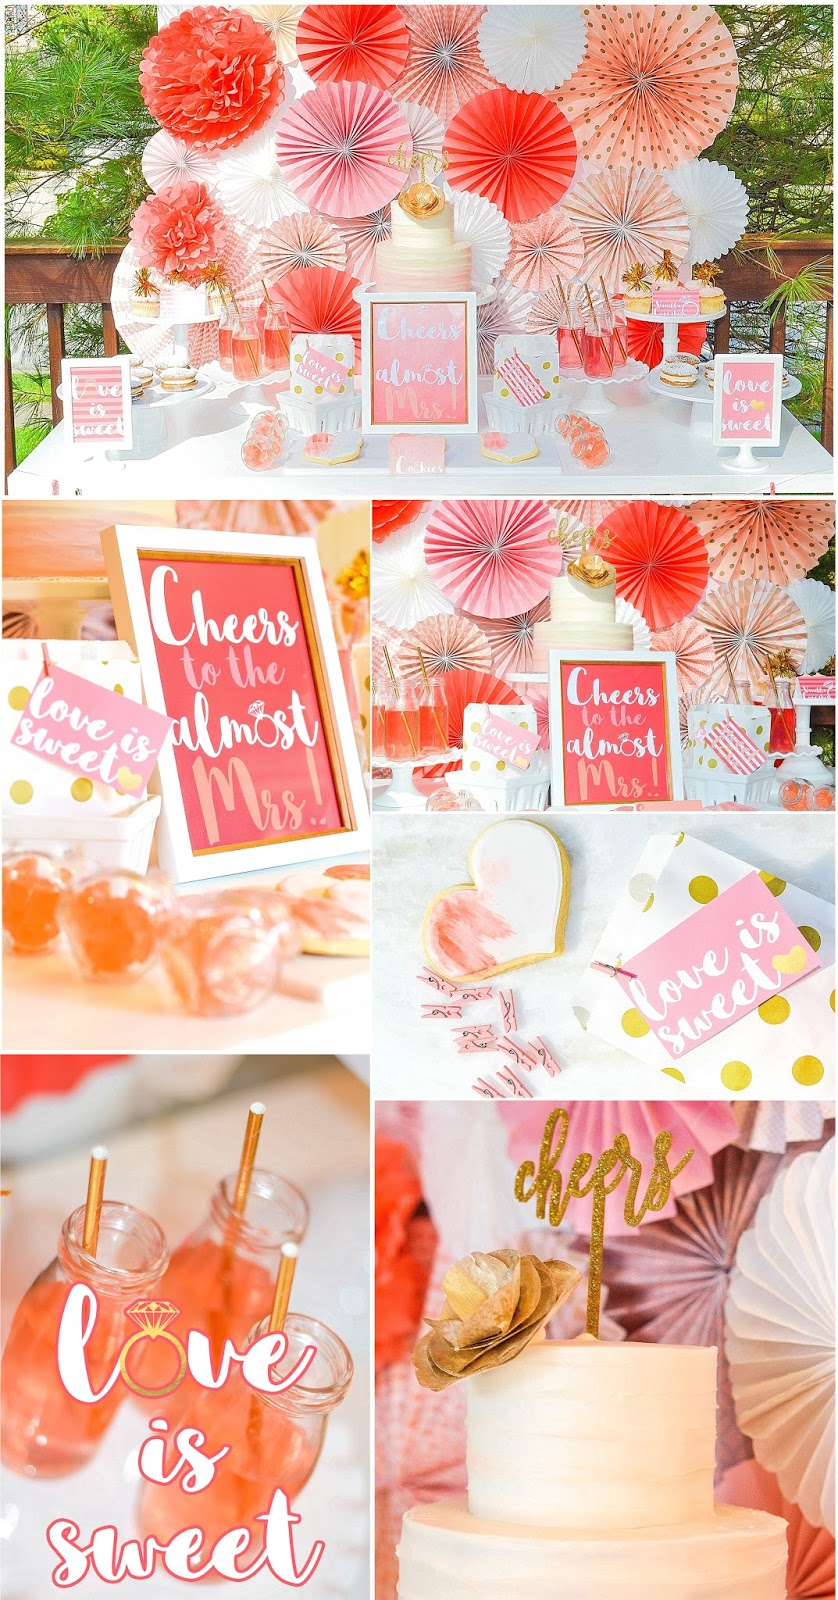 http://www.partyboxdesign.com/item_1984/Almost-a-Mrs.-Signs.htm